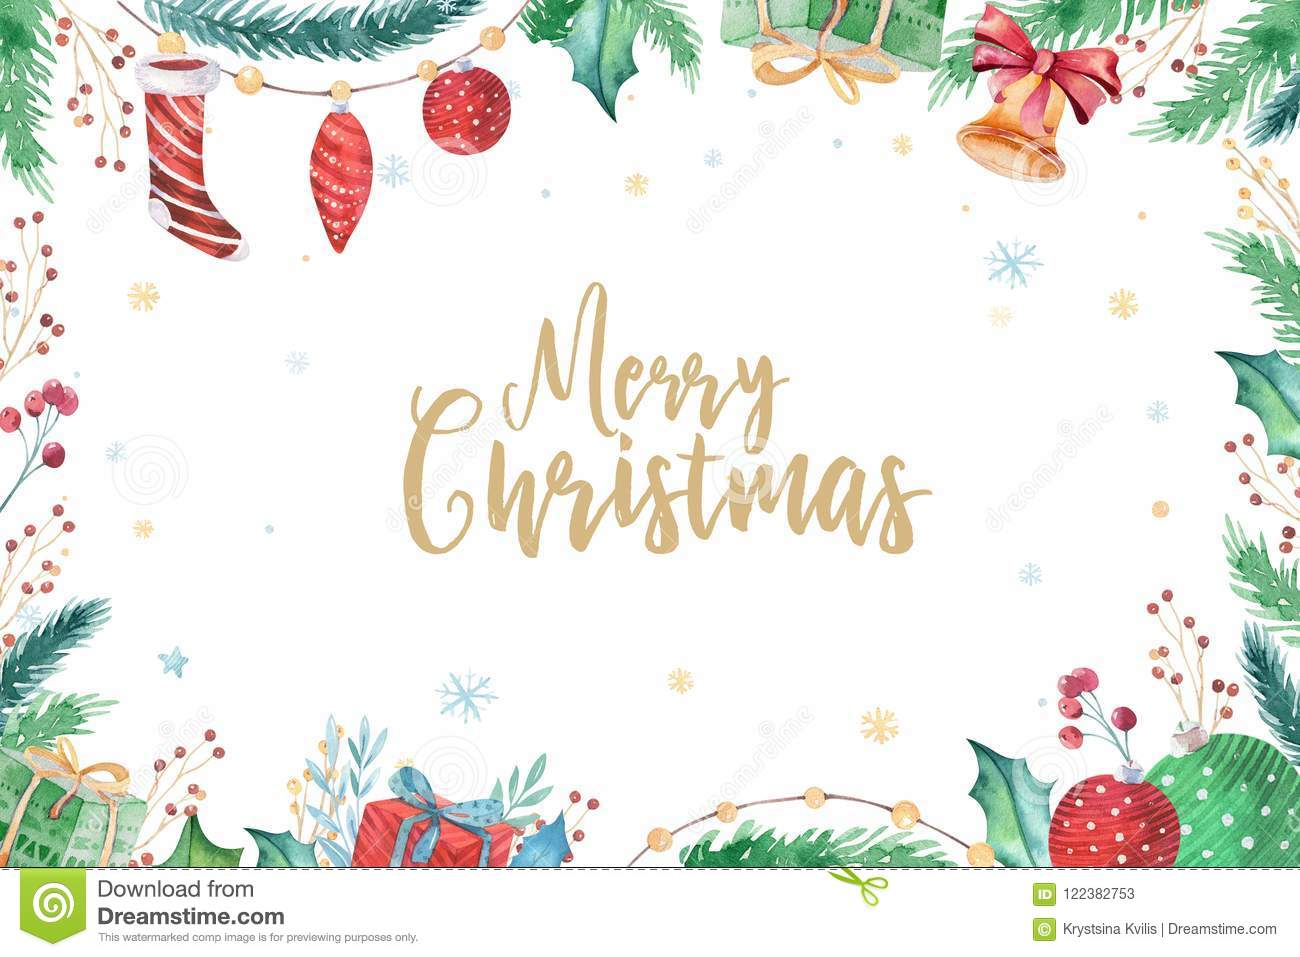 Merry Christmas and Happy New Year 2019 decoration winter set. Watercolor holiday background. Xmas element card